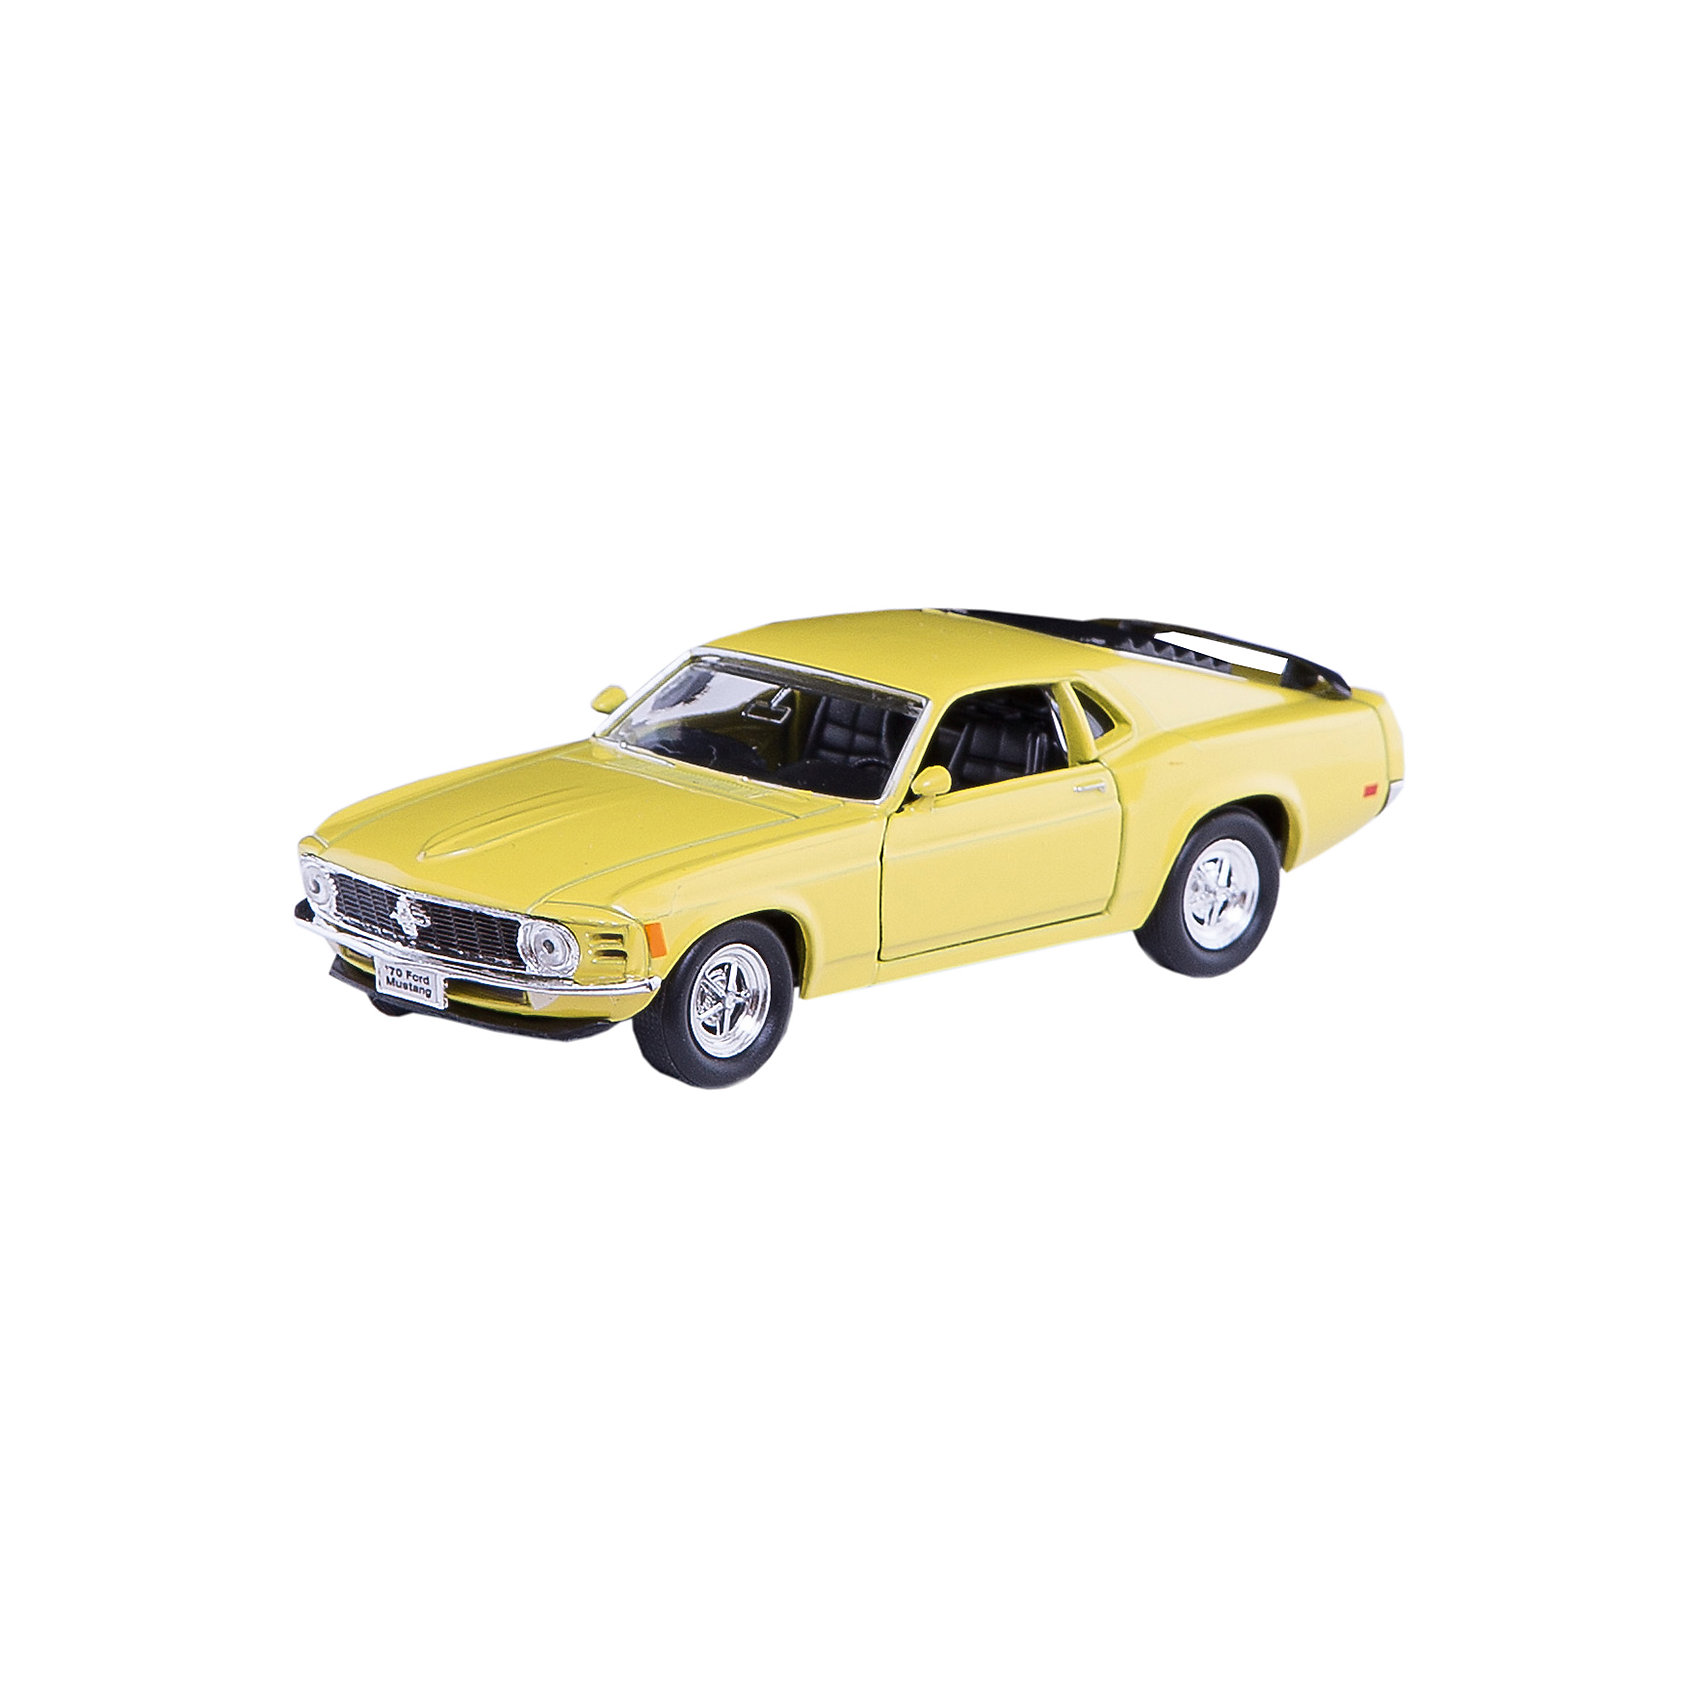 ������ ��������� ������ 1:34-39 Ford Mustang 1970, Welly